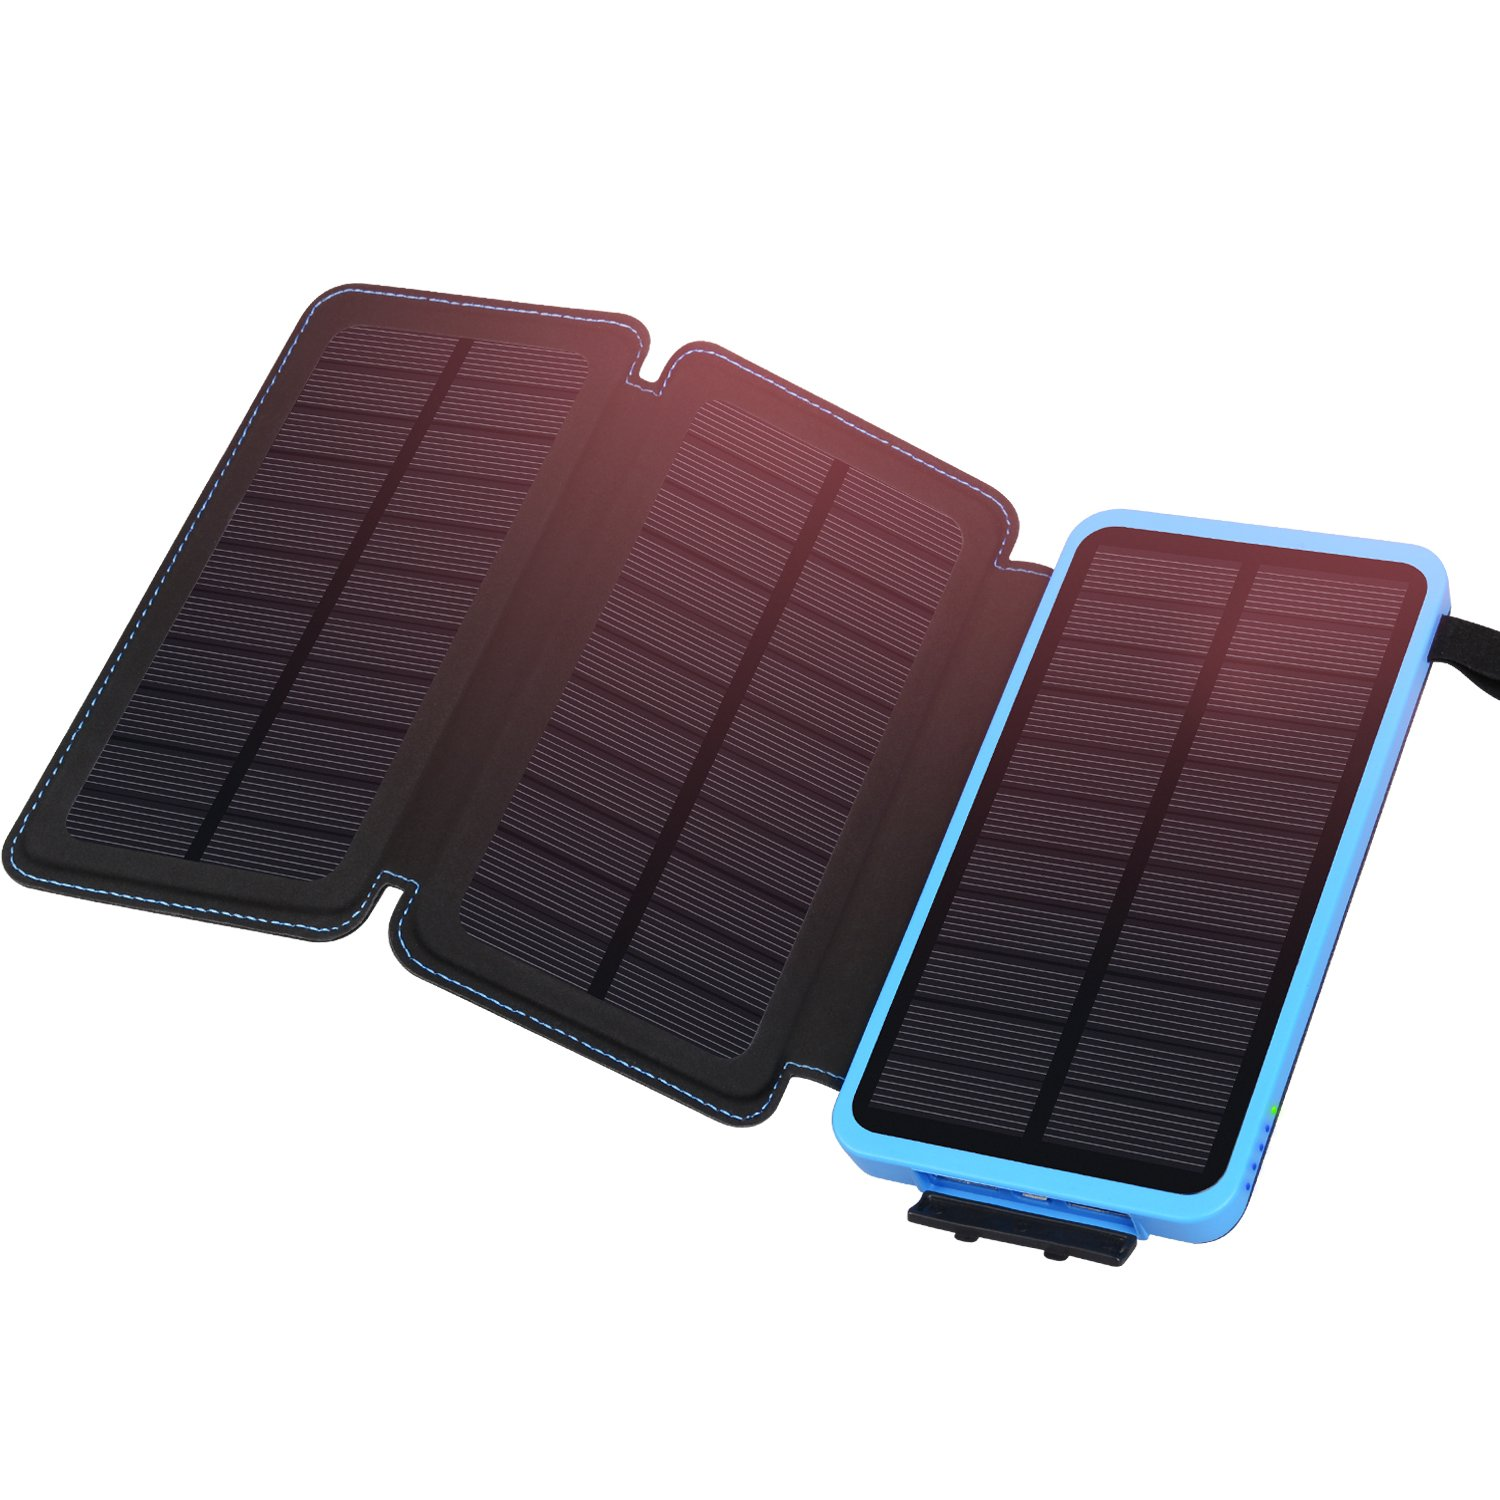 Solar Power Bank 24000mAh, ADDTOP Solar Charger with 3 Solar Waterproof Panels Portable Externer Battery Chargers Compatible with Most Smart Phones, Tablets and More